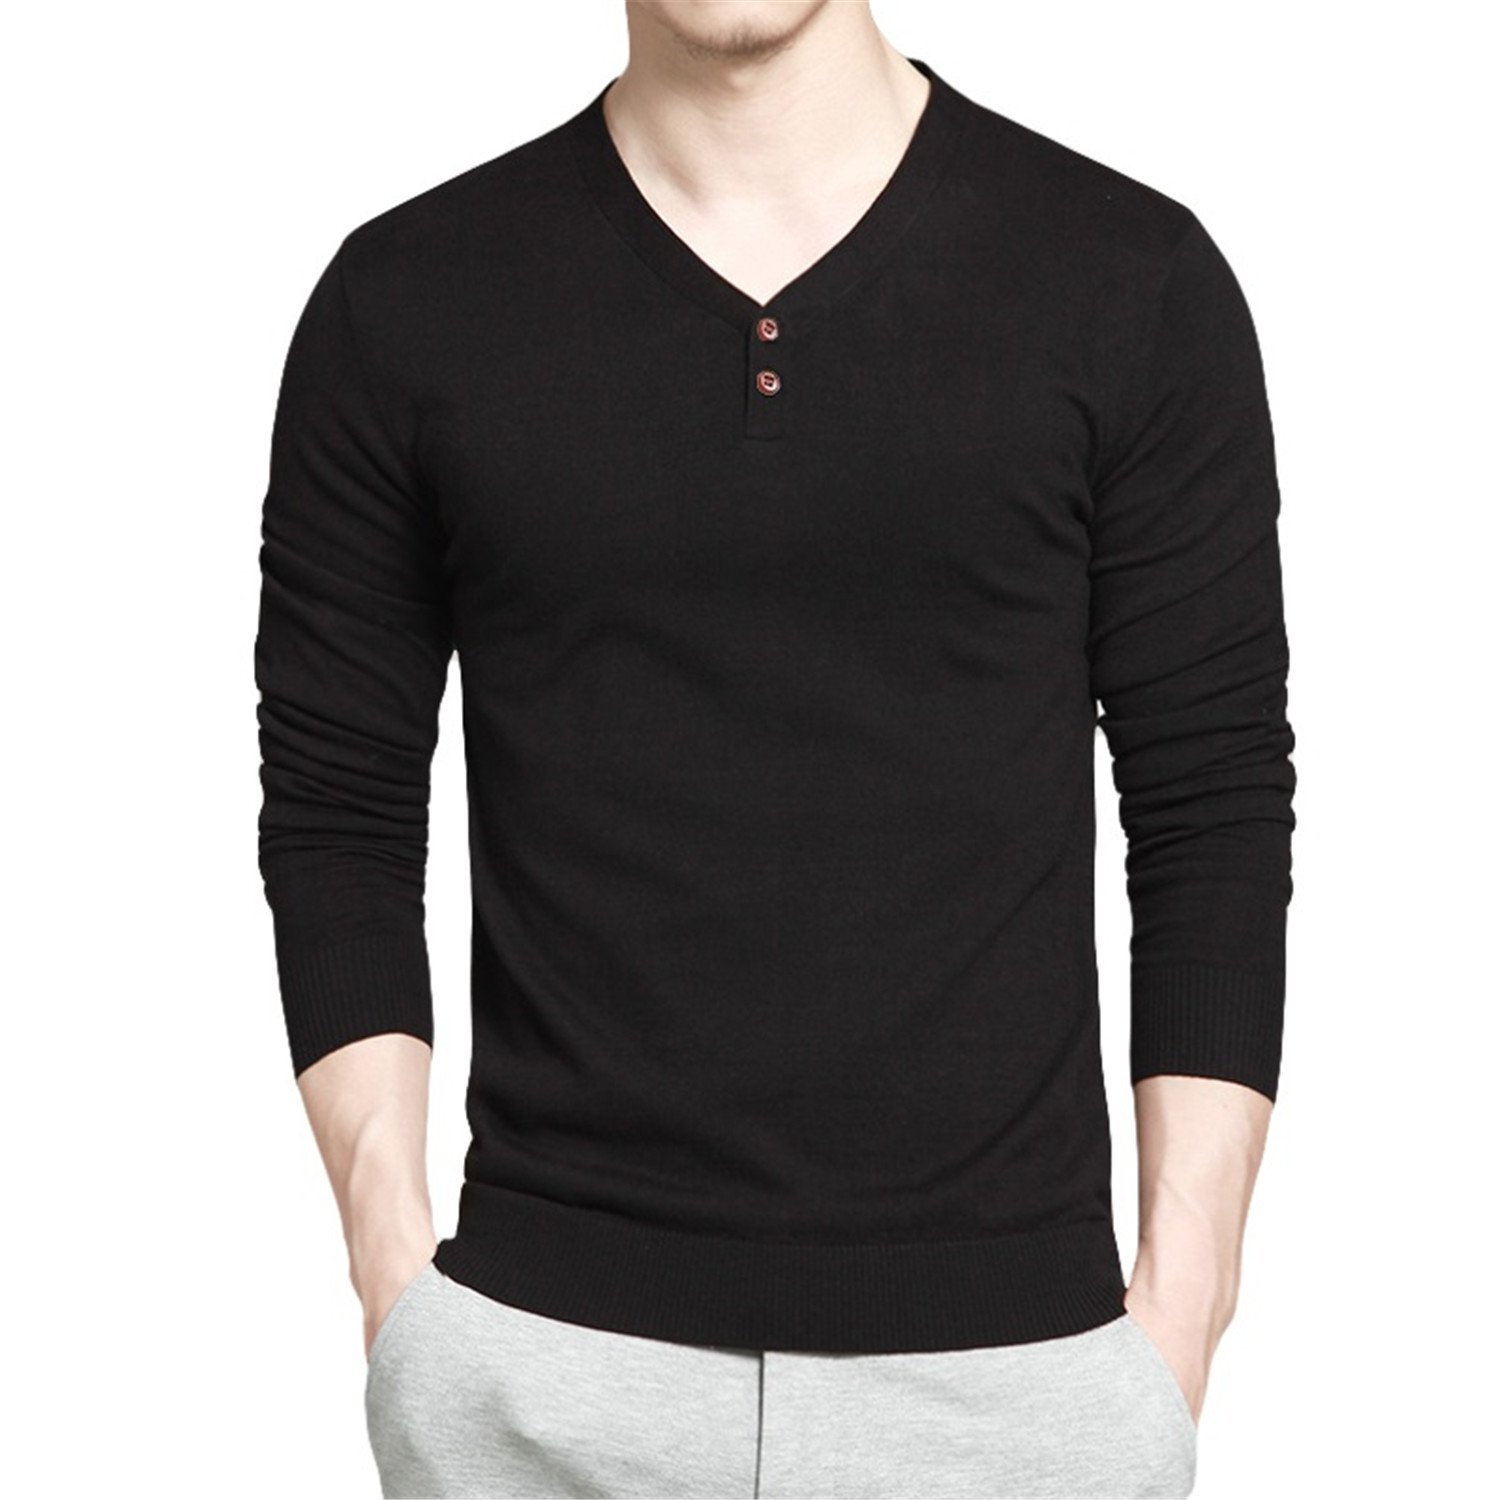 NeeKer Jacket Men Sweaters Combed Cotton V Neck Long Sleeve Knitted Polo Shirts Men Pullovers Autumn M-4XL New